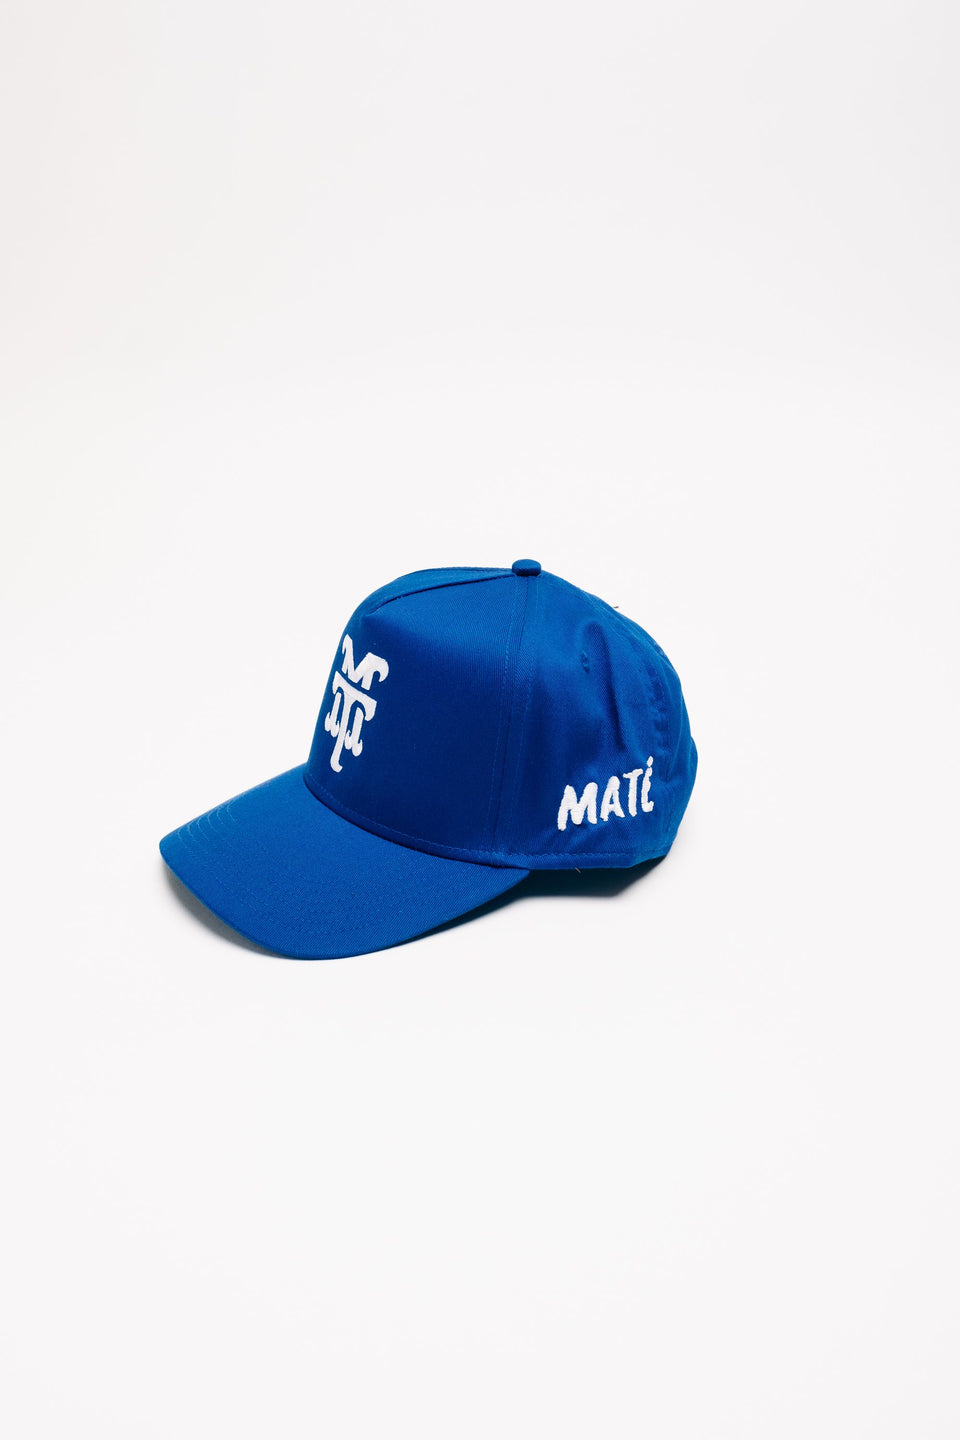 Home Team - Retro Golfer Snap Back - Royal